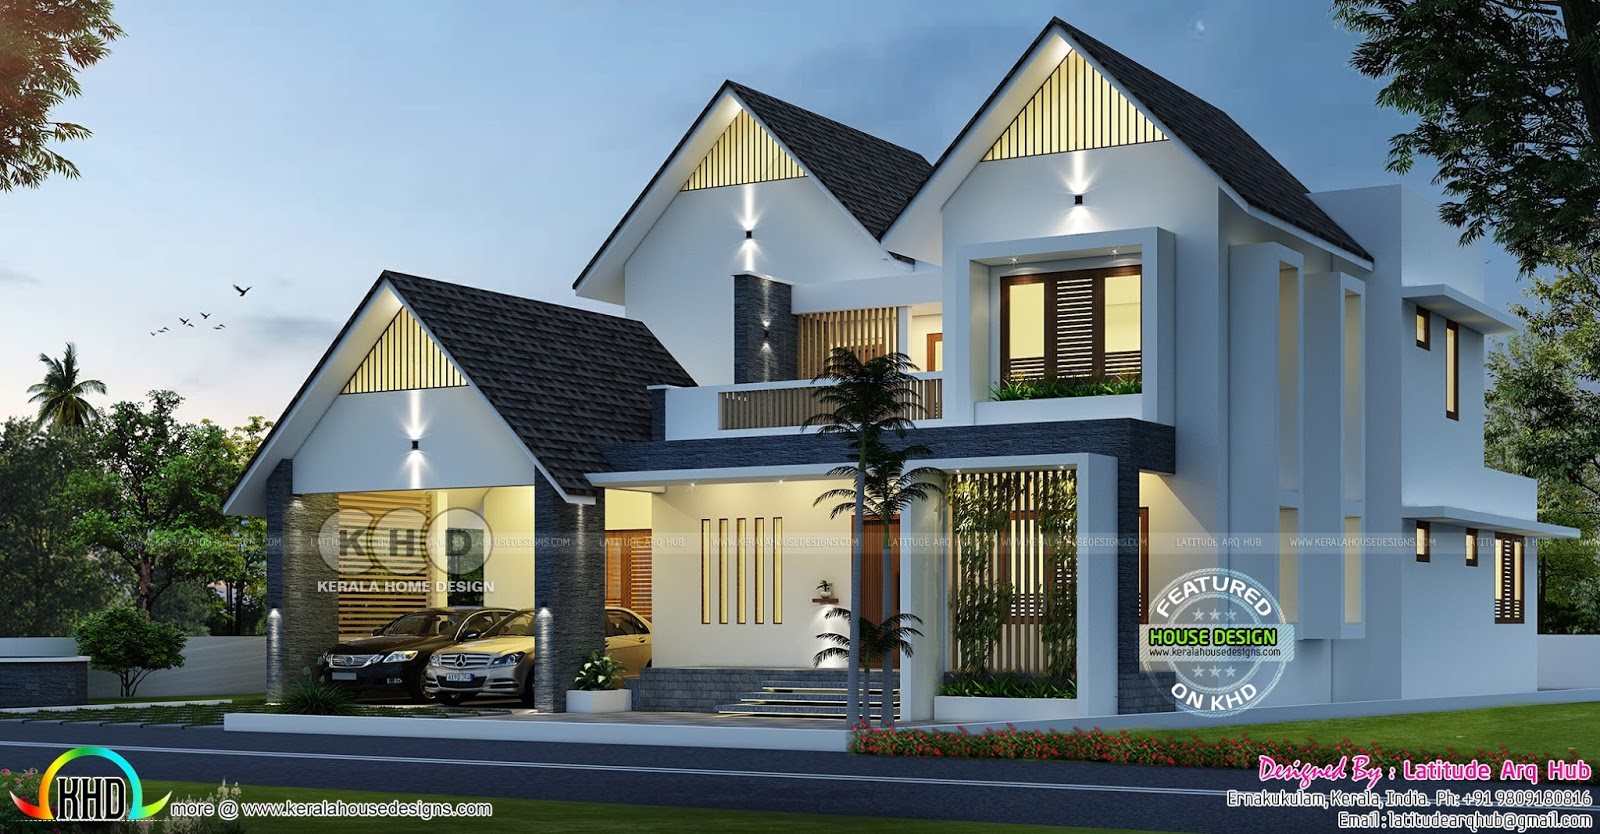 Sloping roof western model home design kerala home for Western house plans with photos